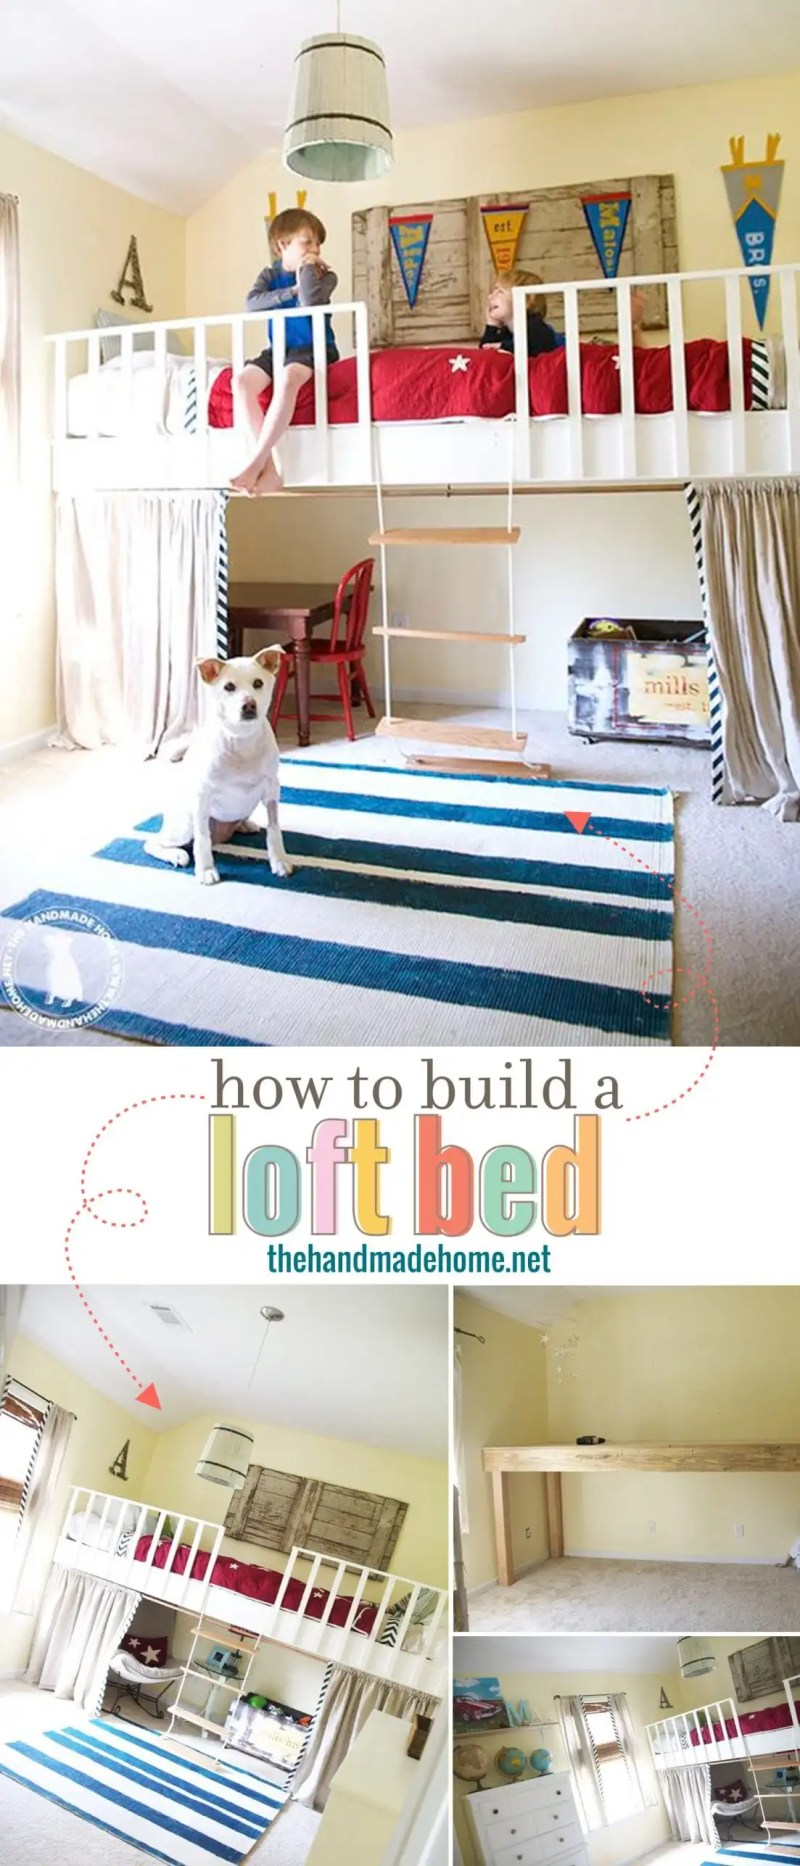 Large Of How To Build A Loft Bed